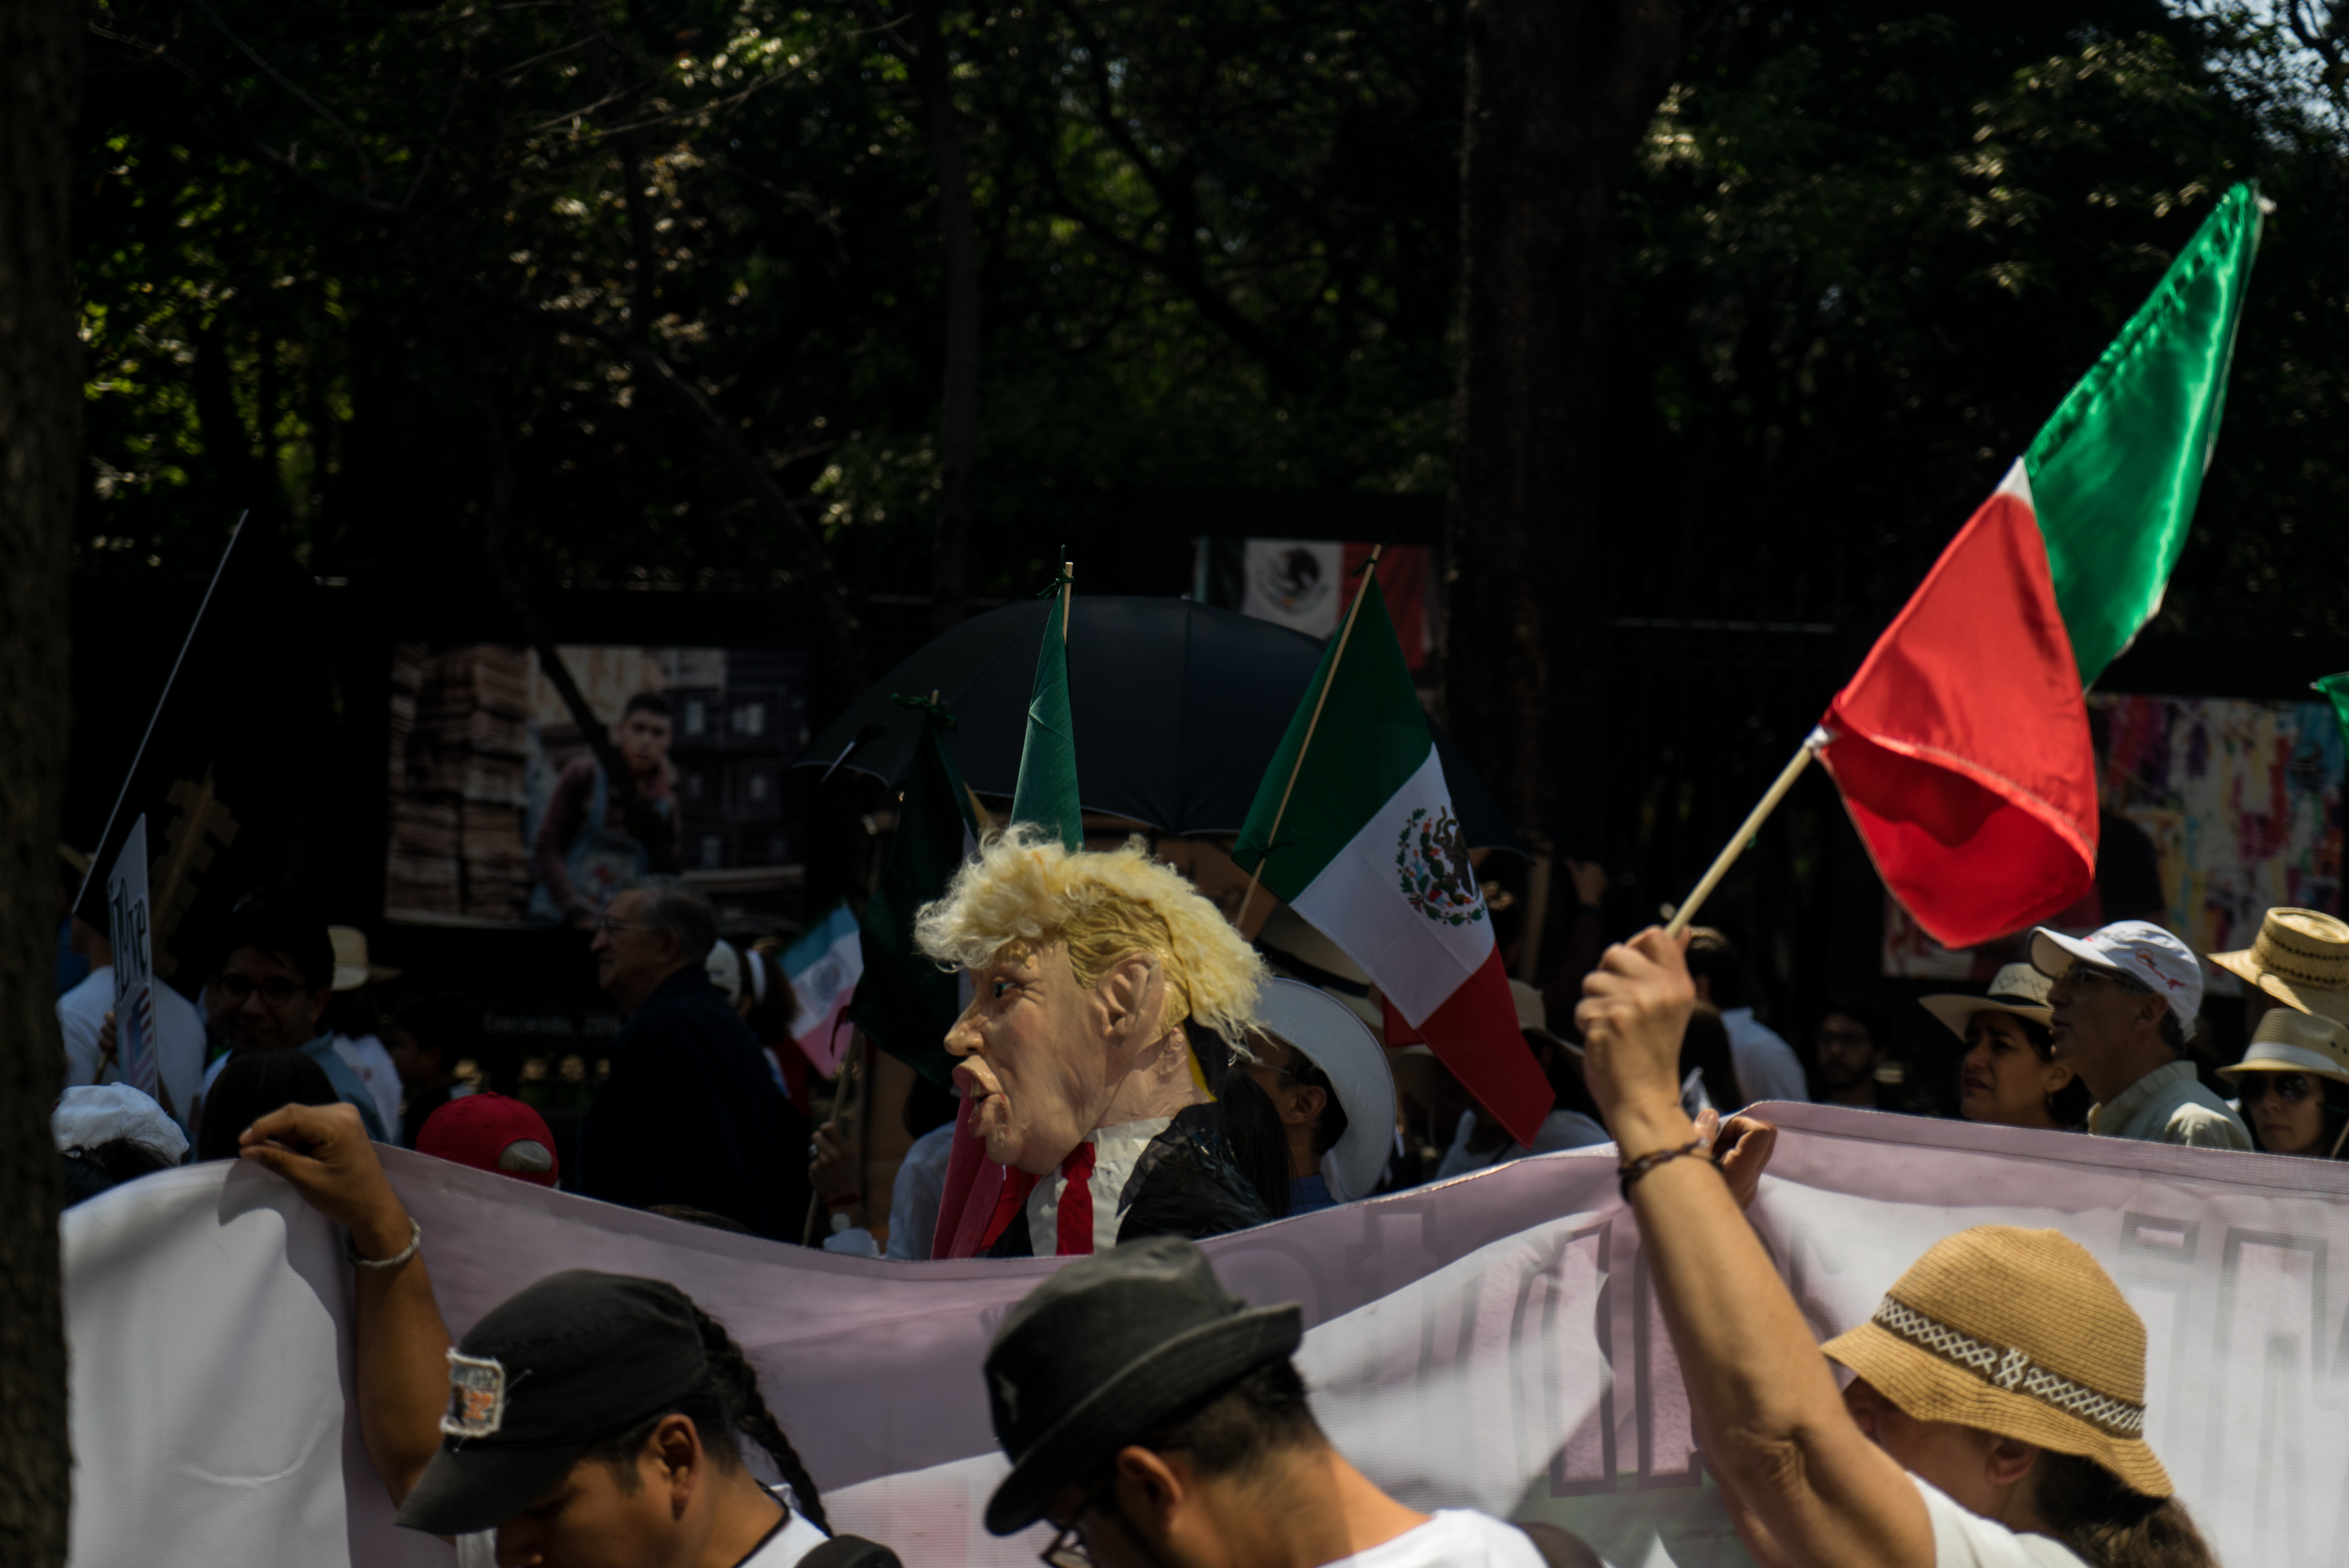 Demonstrators March To Demand That The Government Defend Mexico Amid Trump's Threats